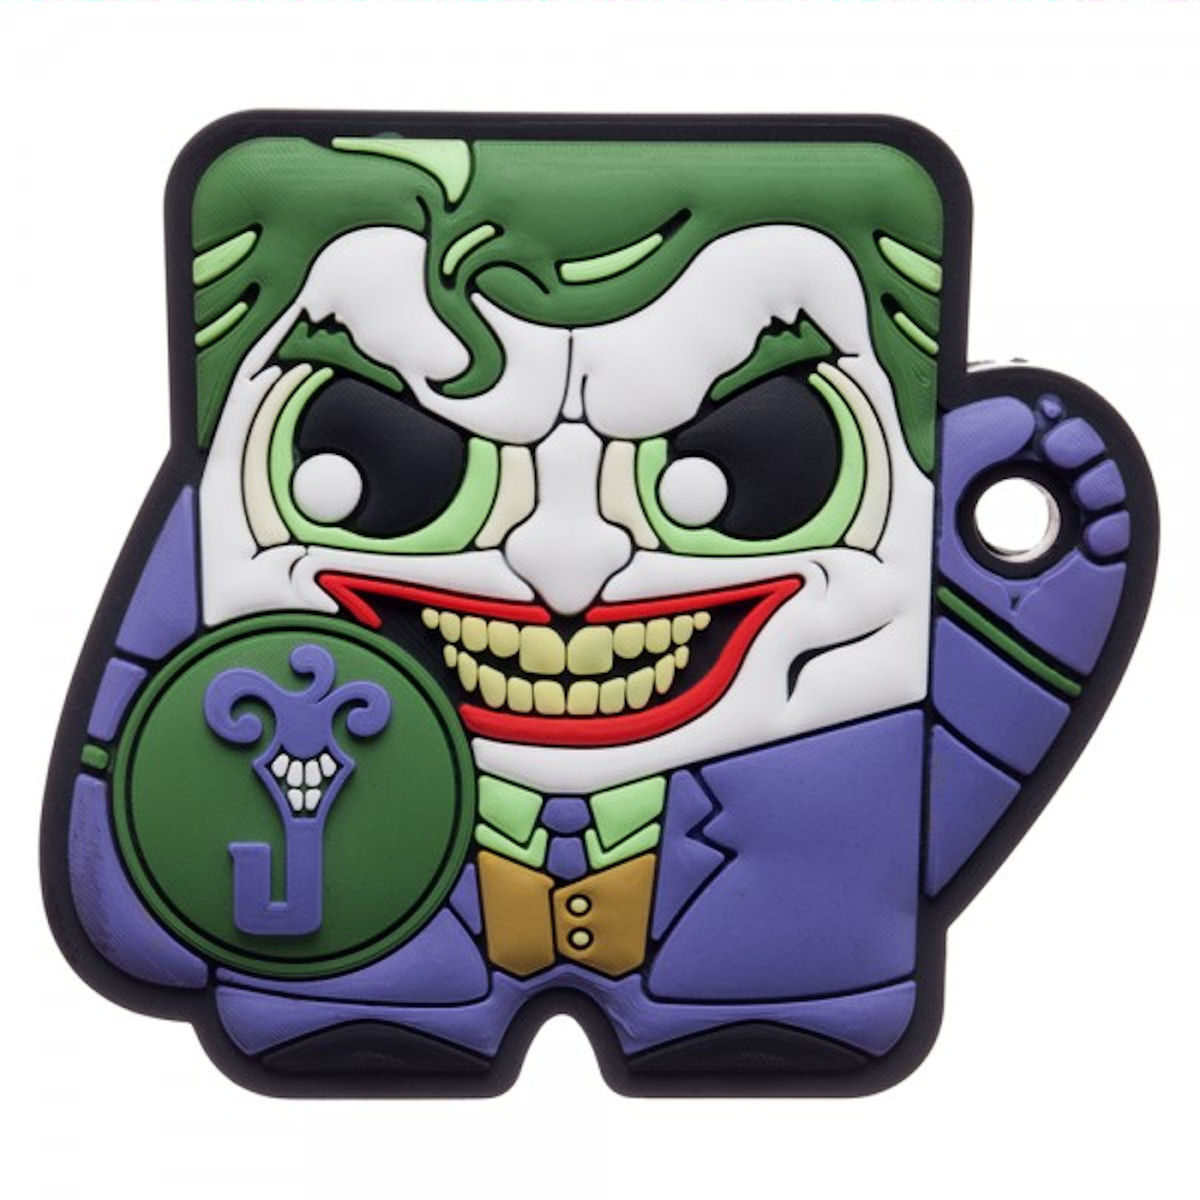 DC Comics Joker FoundMi App Enabled Bluetooth Tracking Tag